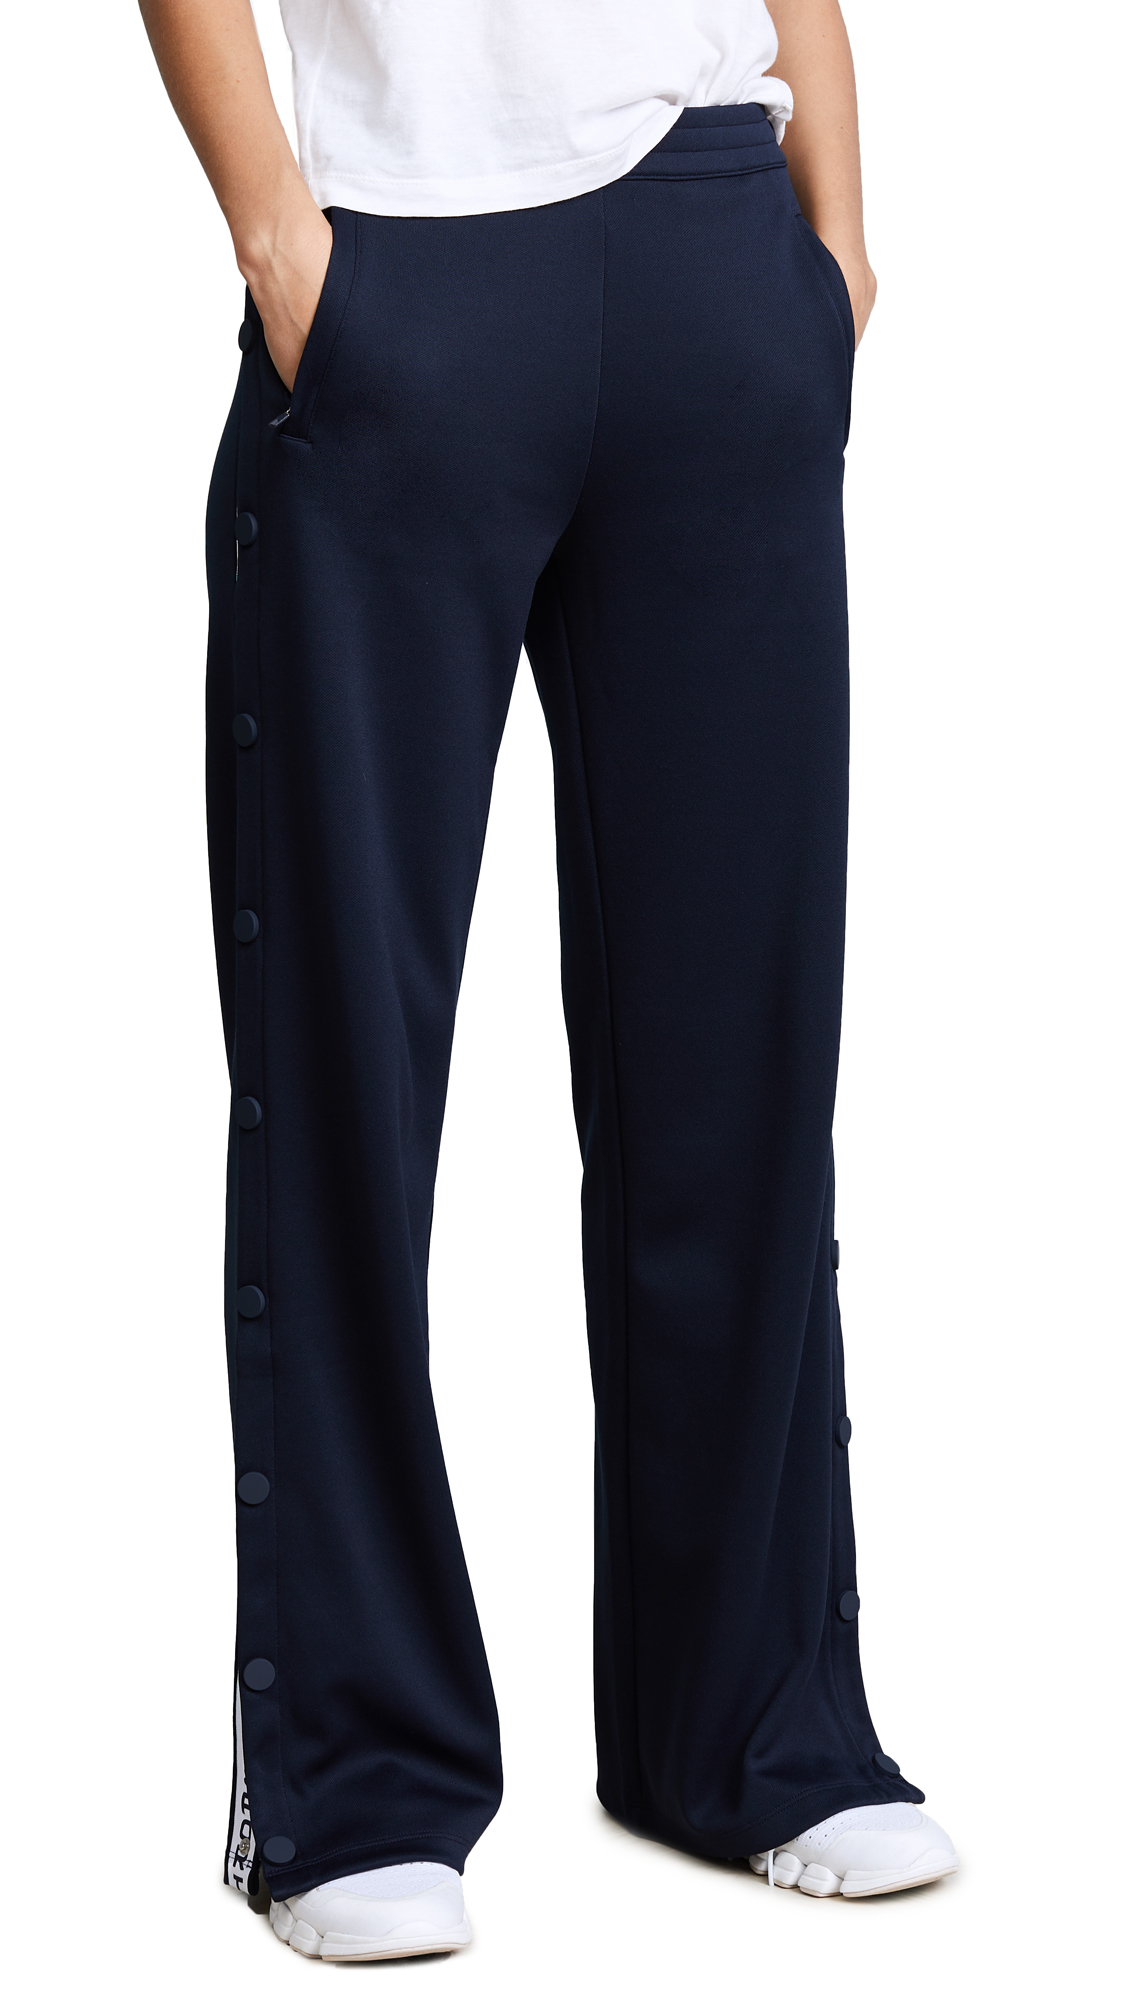 Tory Sport Banner Tear Away Track Pants In Tory Navy